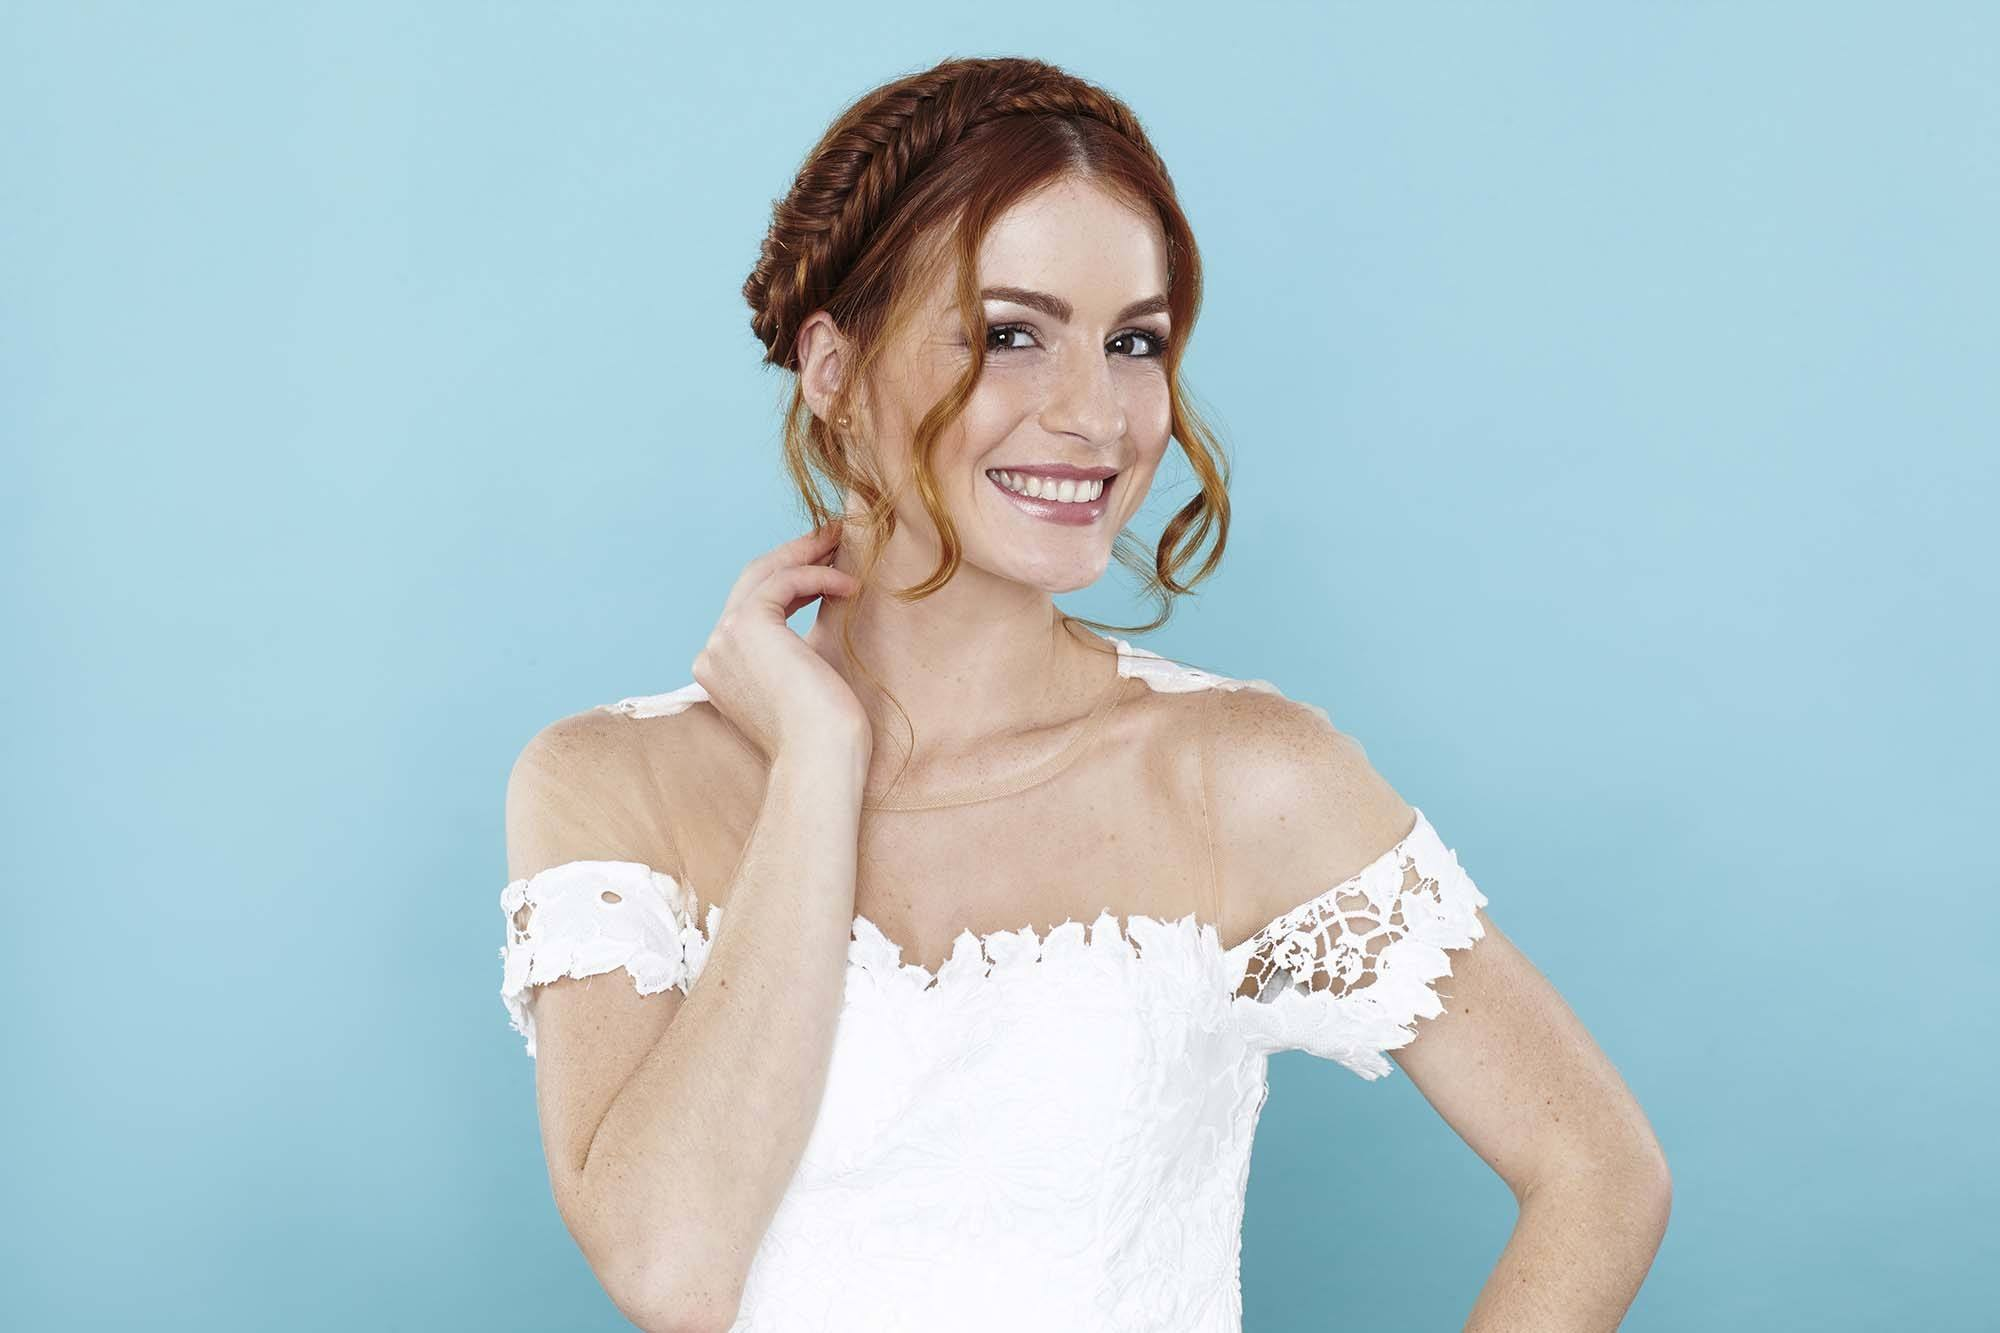 A young redhead woman wearing a white dress and with a fishtail milkmaid braid